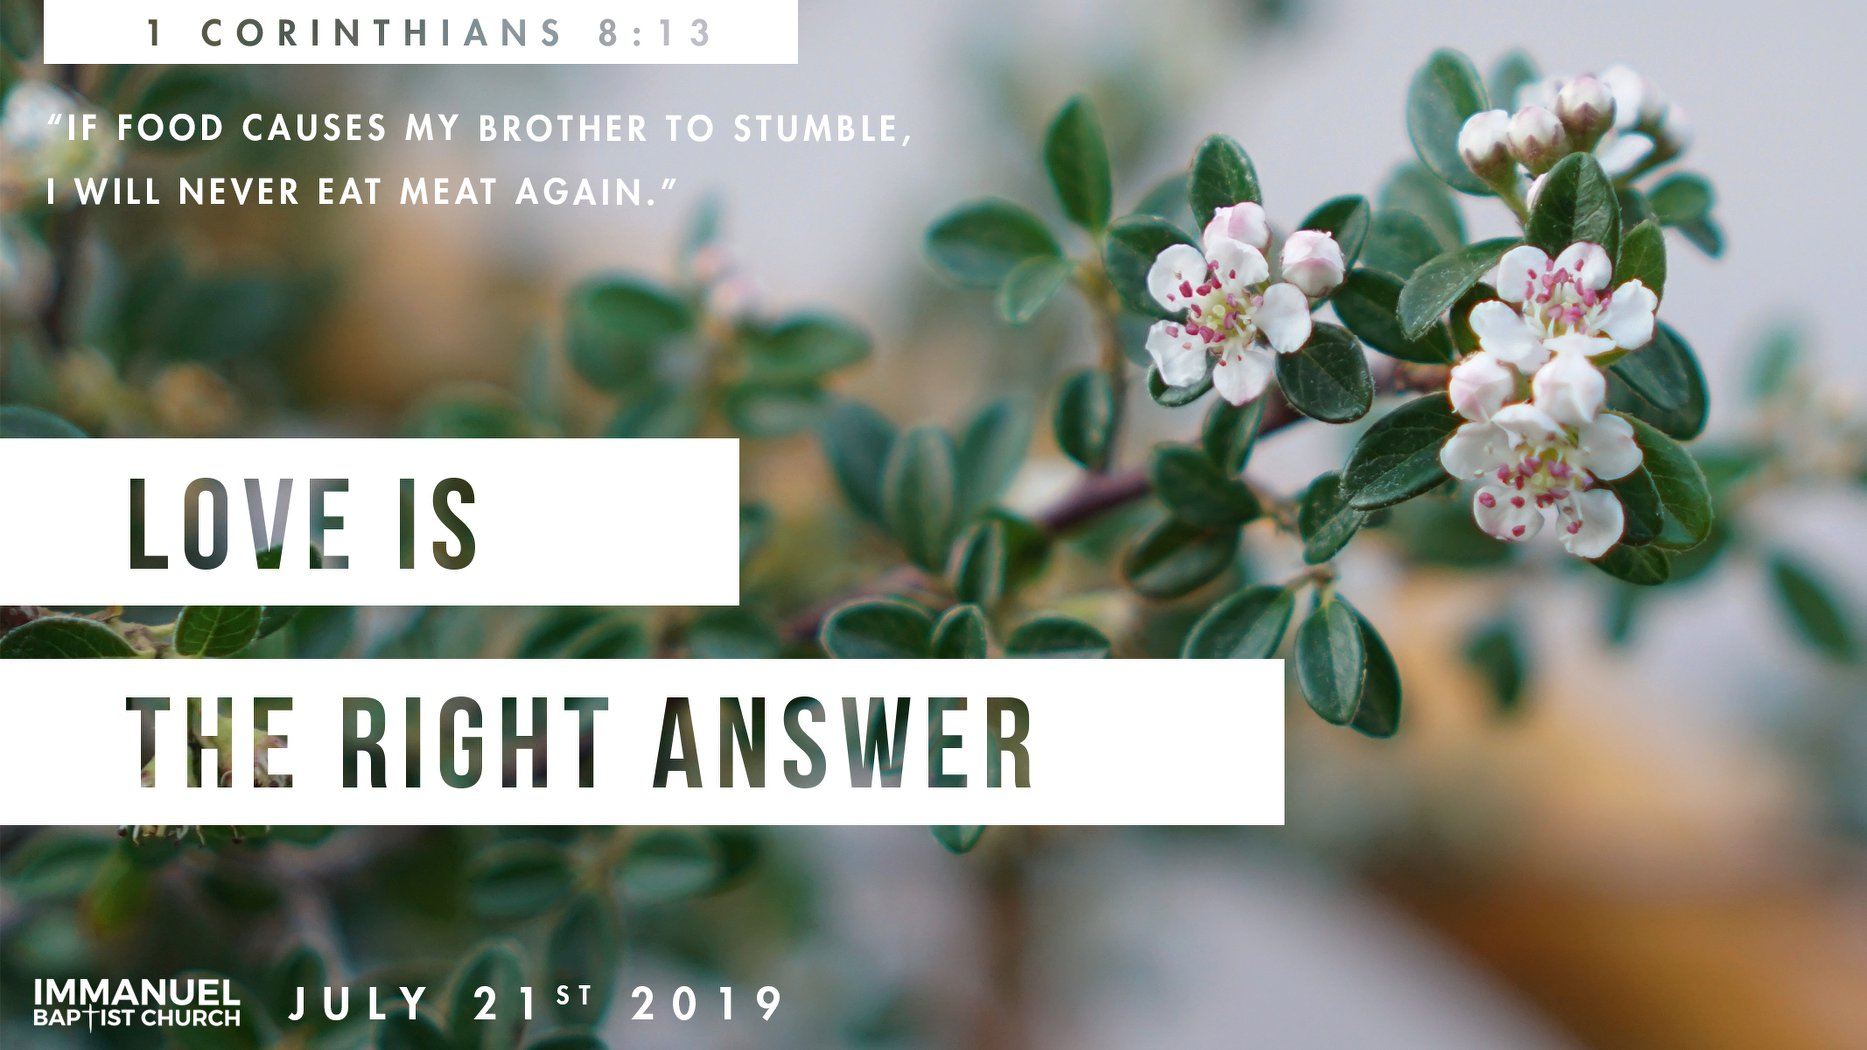 Love is the right answer